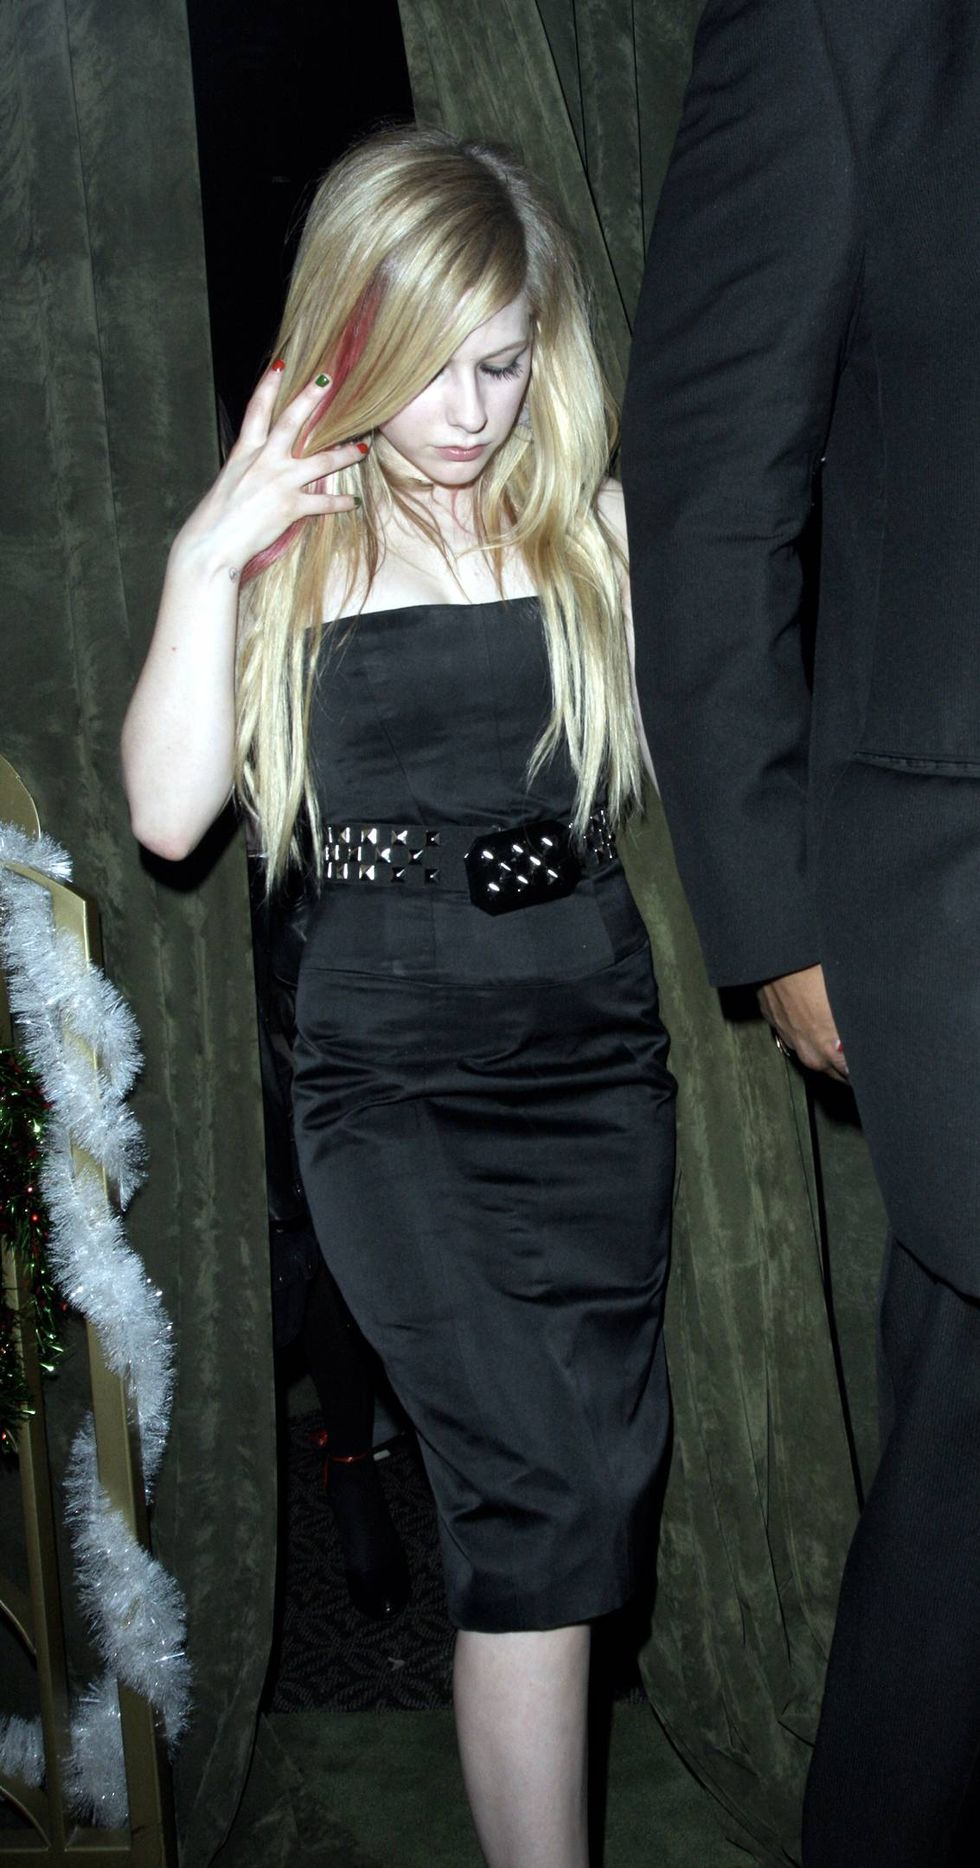 avril-lavigne-at-the-bar-deluxe-nightclub-in-los-angeles-01